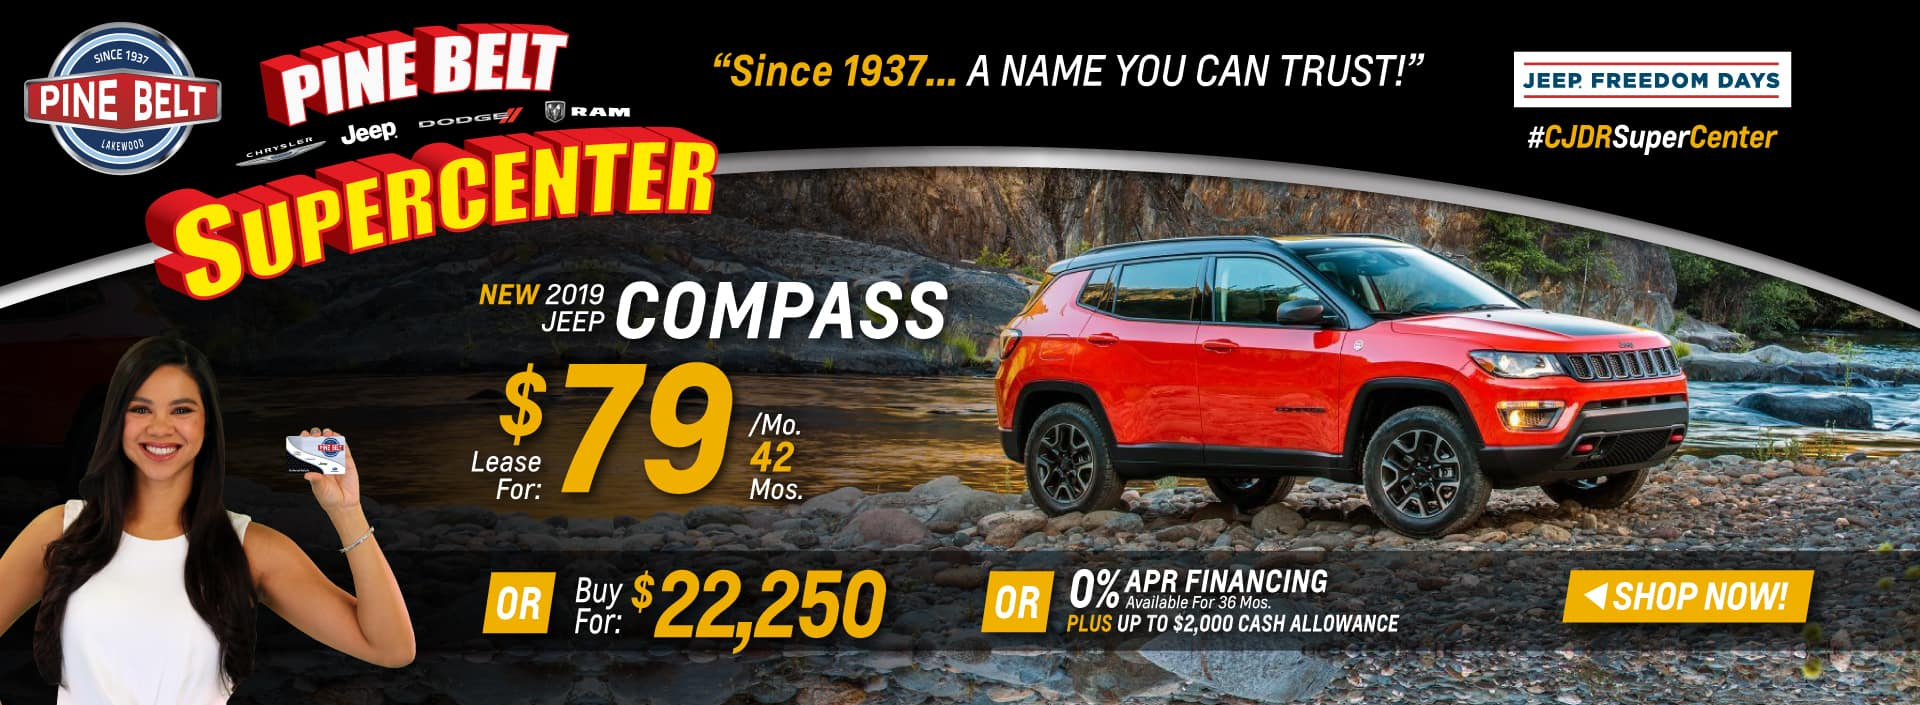 2019 JEEP Compass Sales or Specials in New Jersey